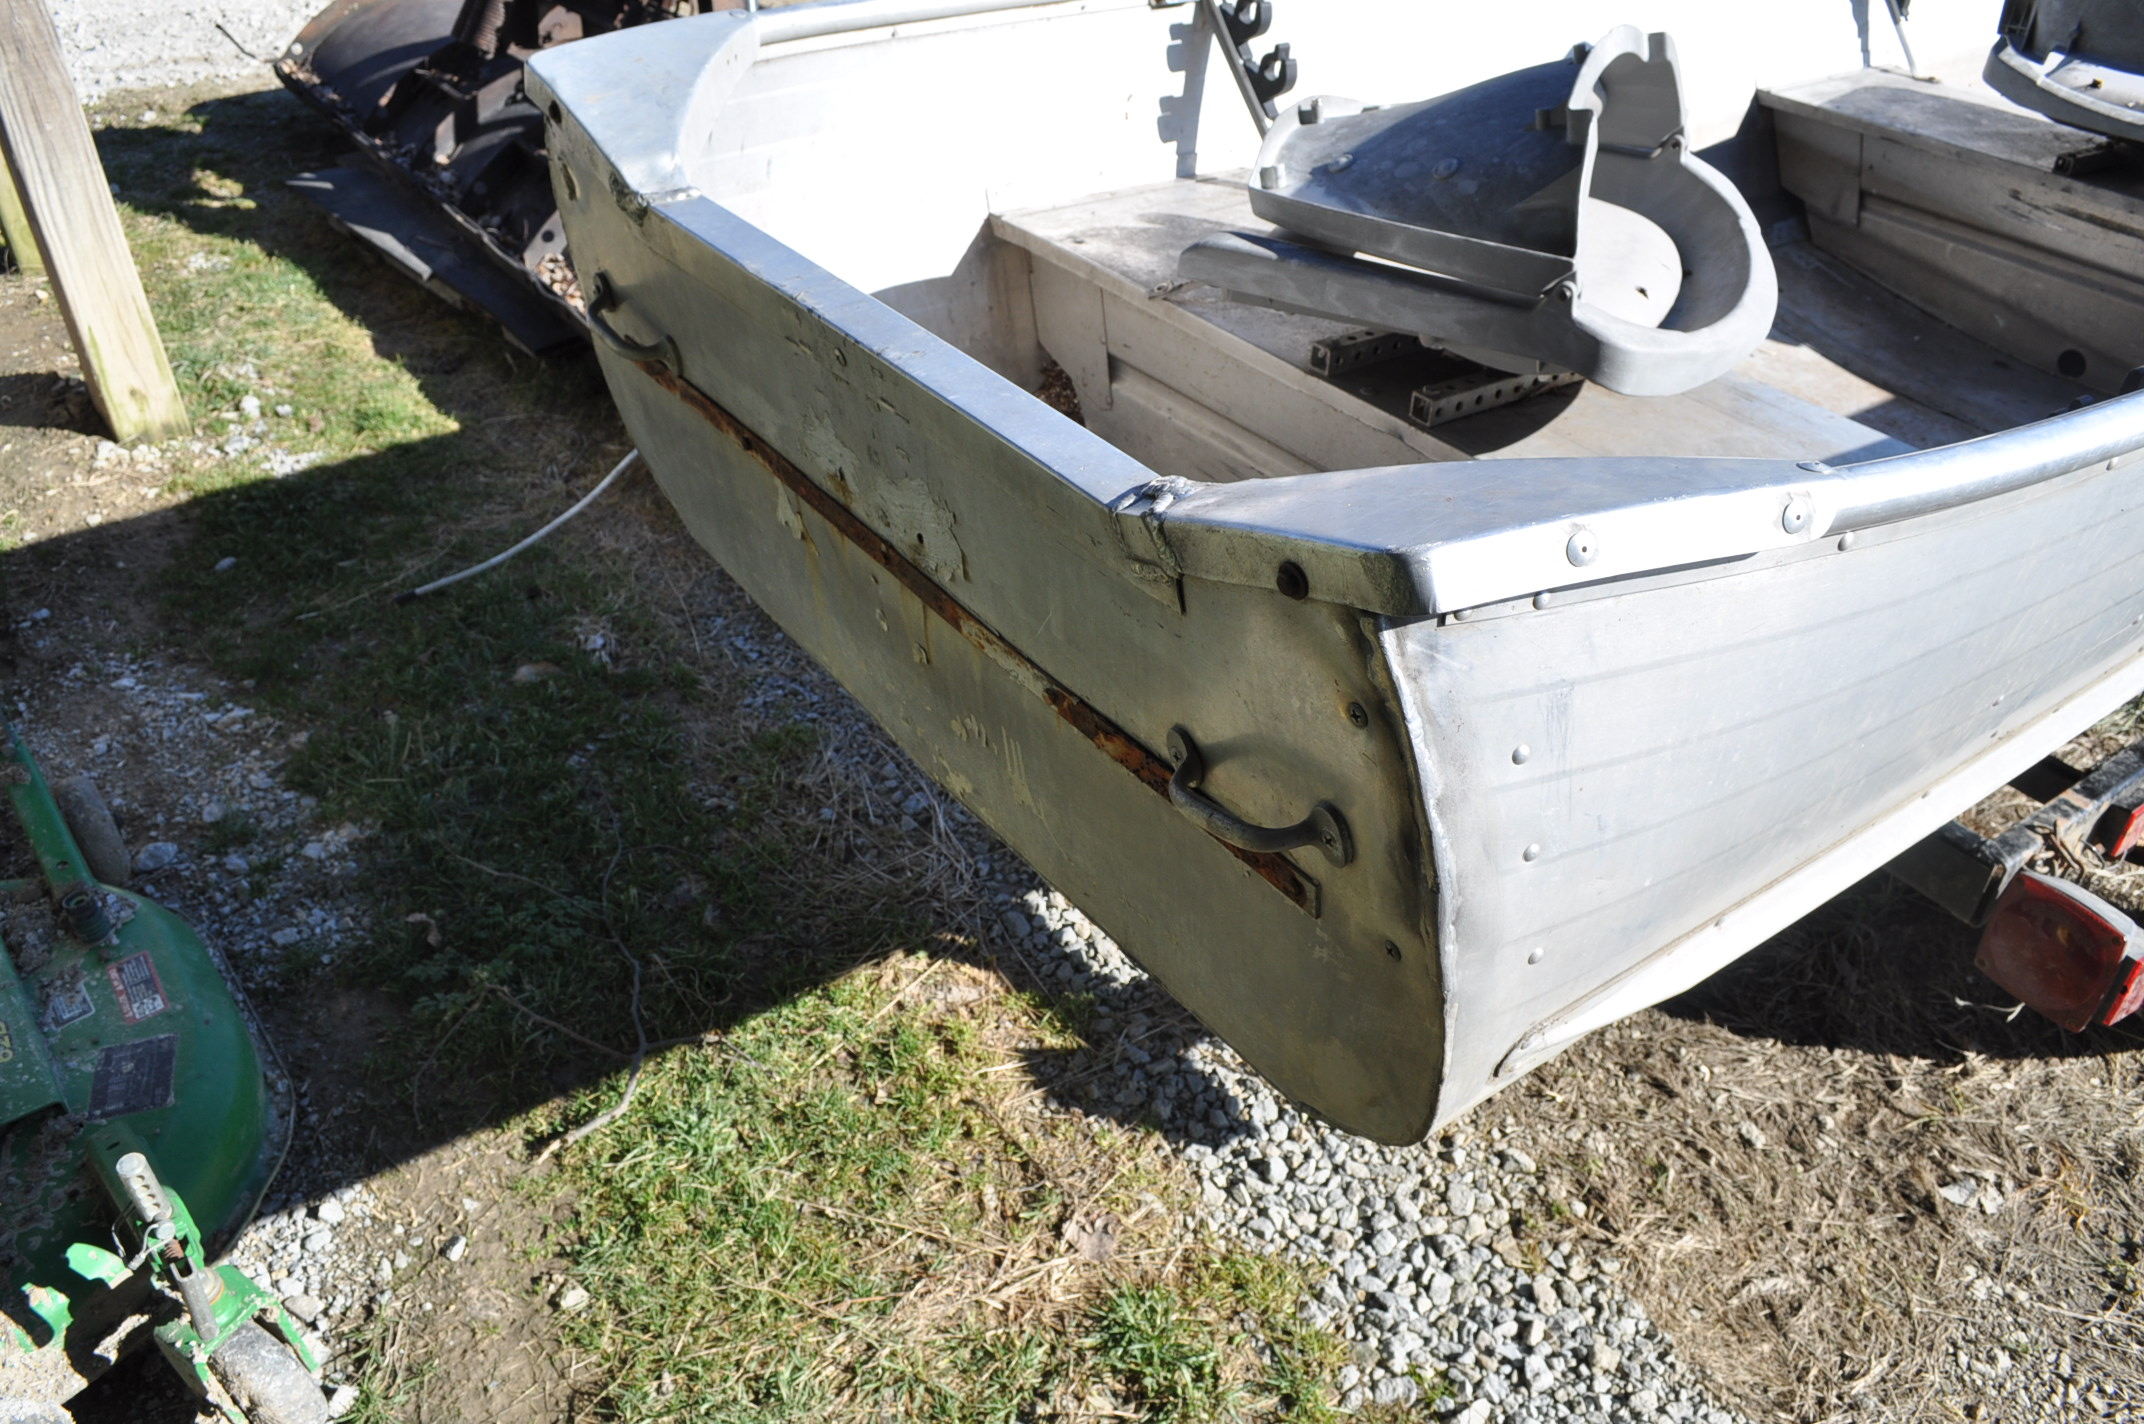 13 ½' aluminum boat w/ trailer, no motor, NO TITLE - Image 6 of 6